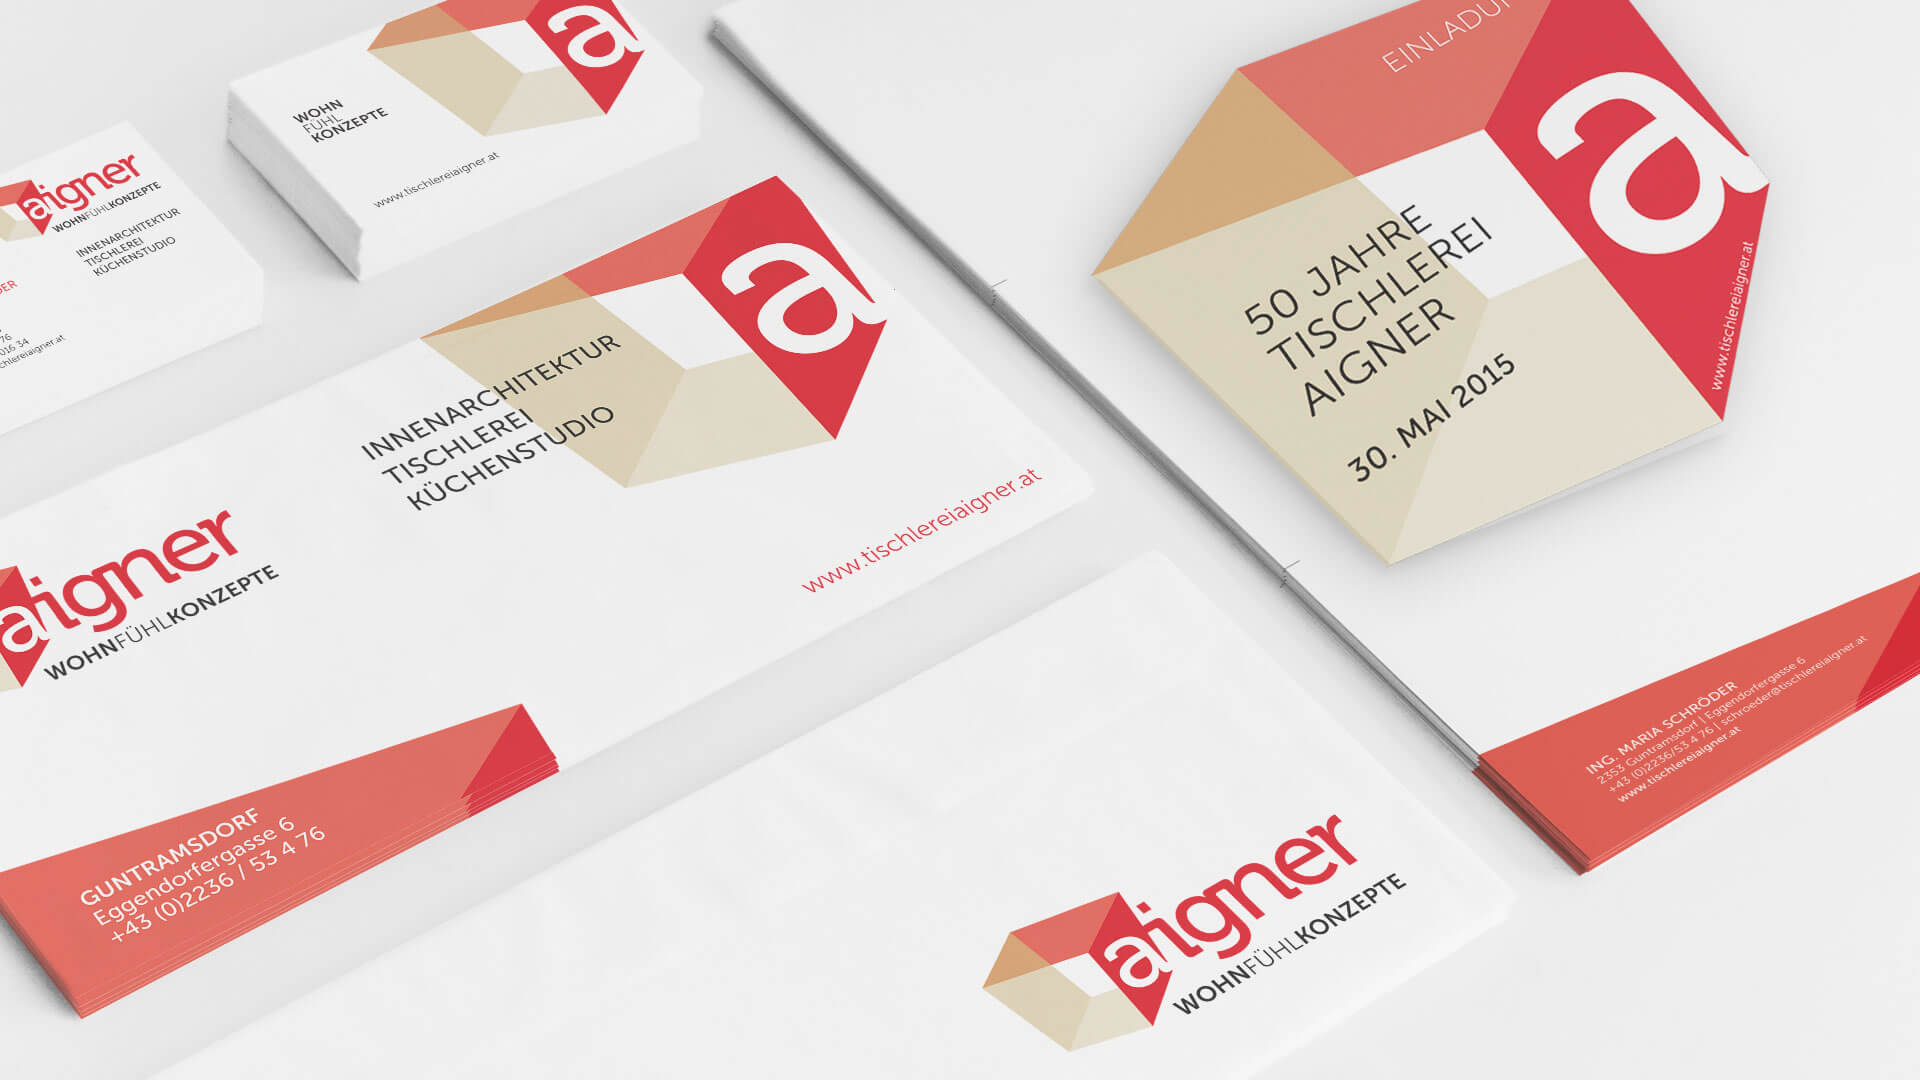 aigner corporate design